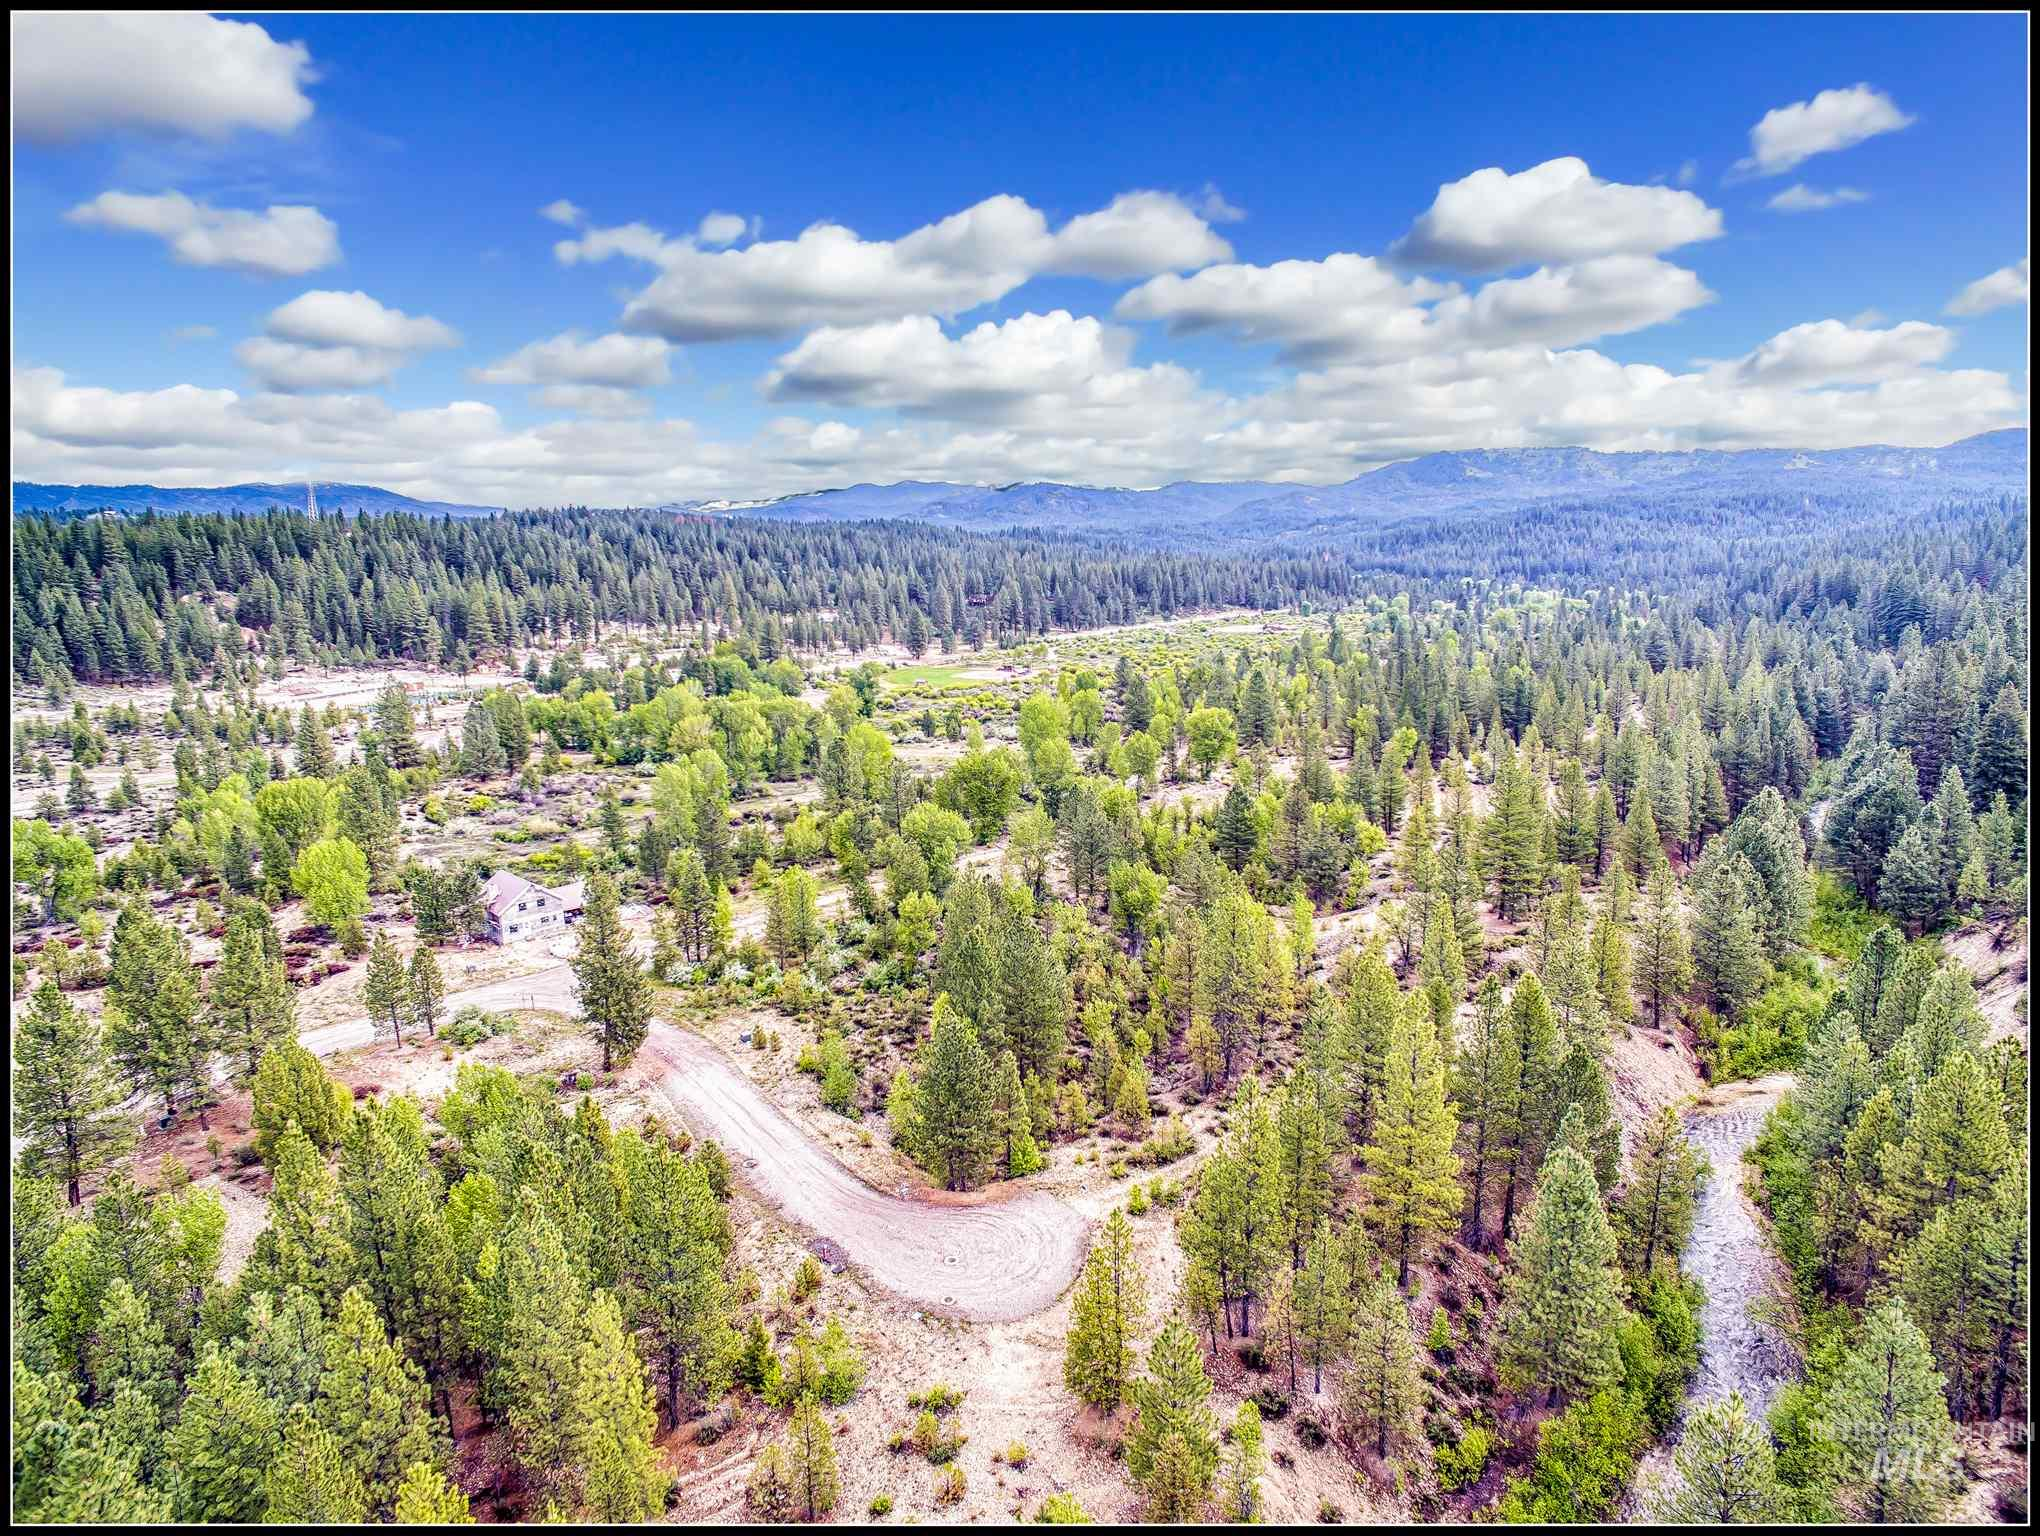 Lot 69 Ethan Way Property Photo - Idaho City, ID real estate listing